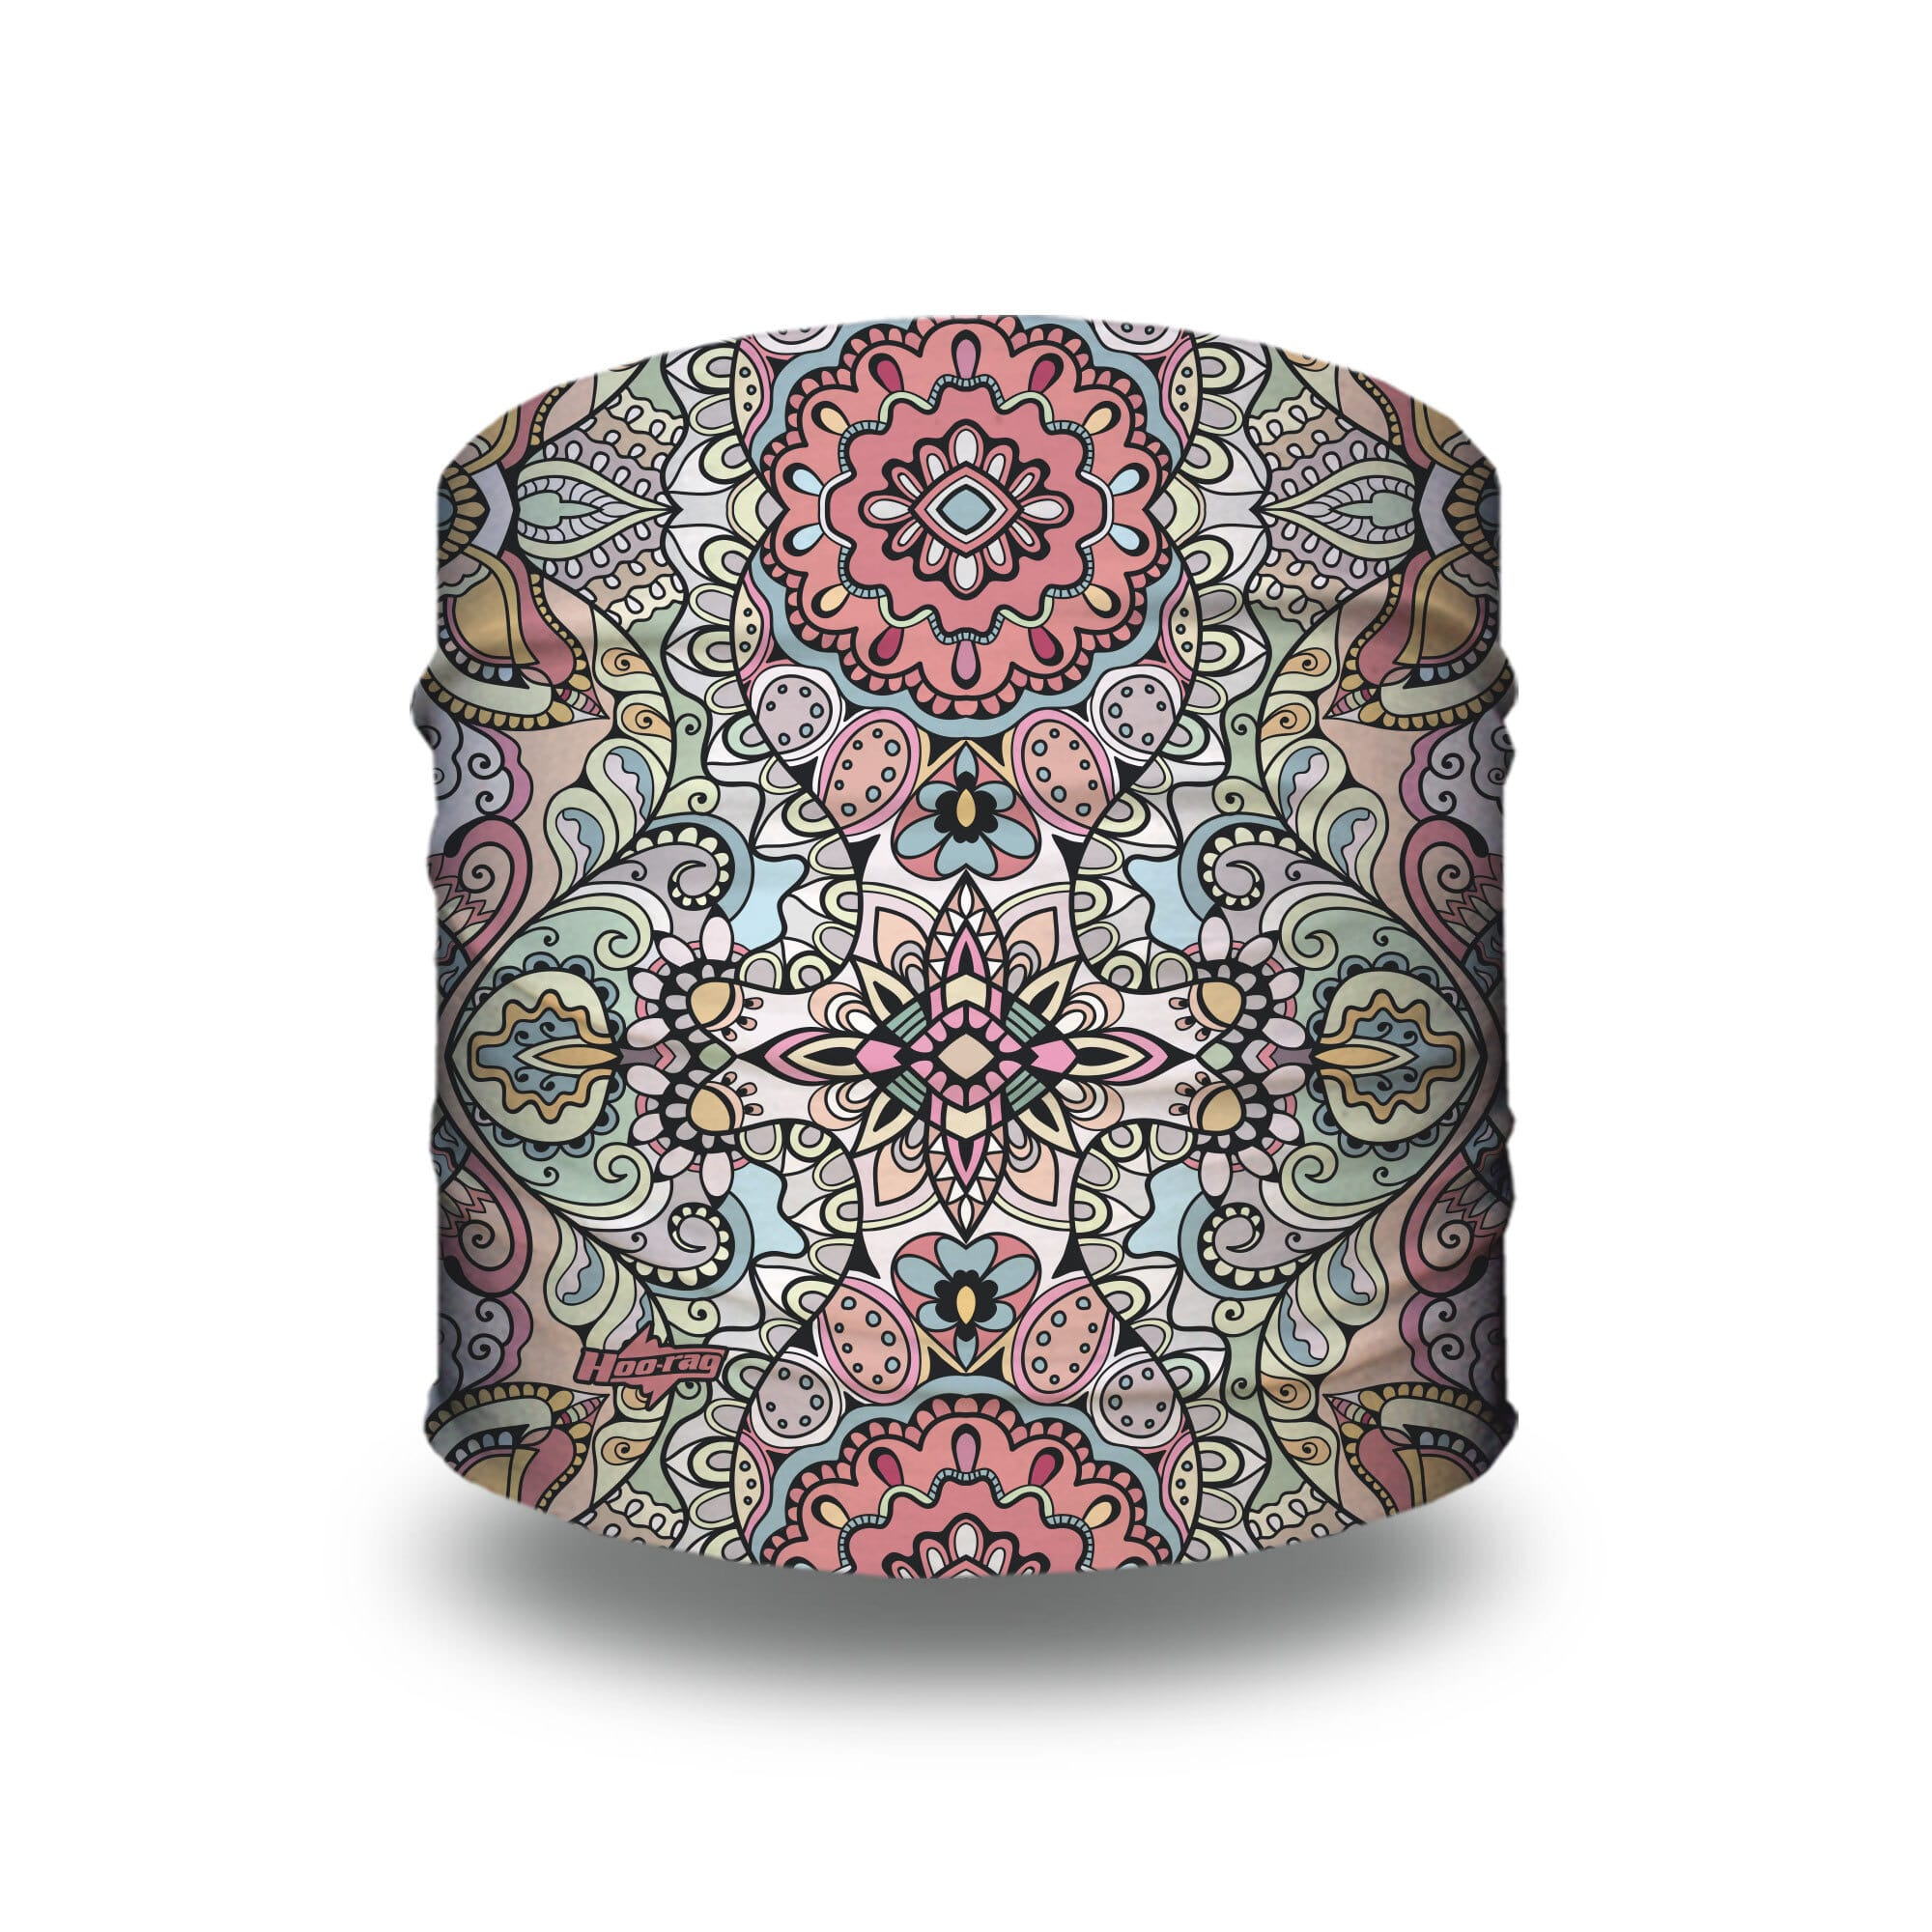 image of a headband in a pastel color pallet with abstract design